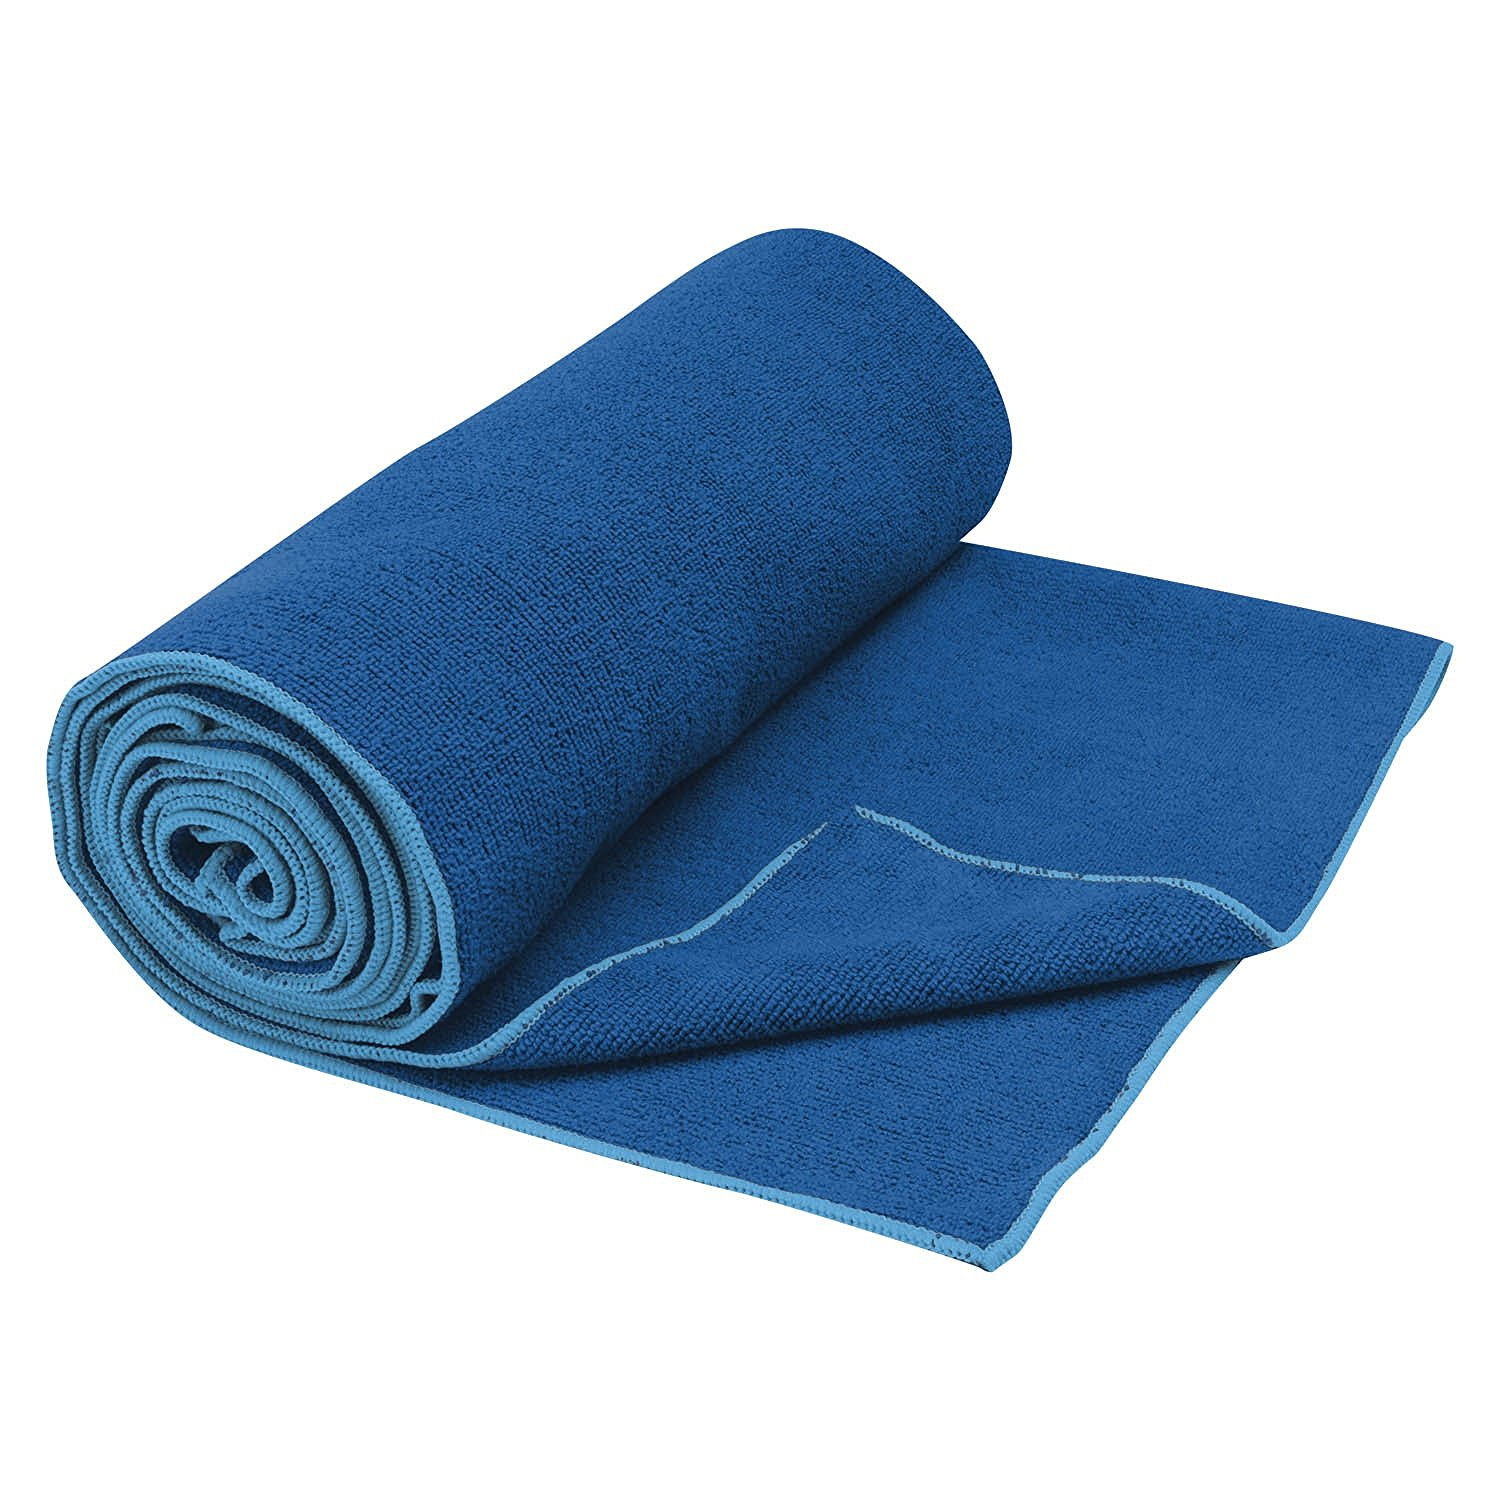 gaiam thirsty yoga towel ocean/sky